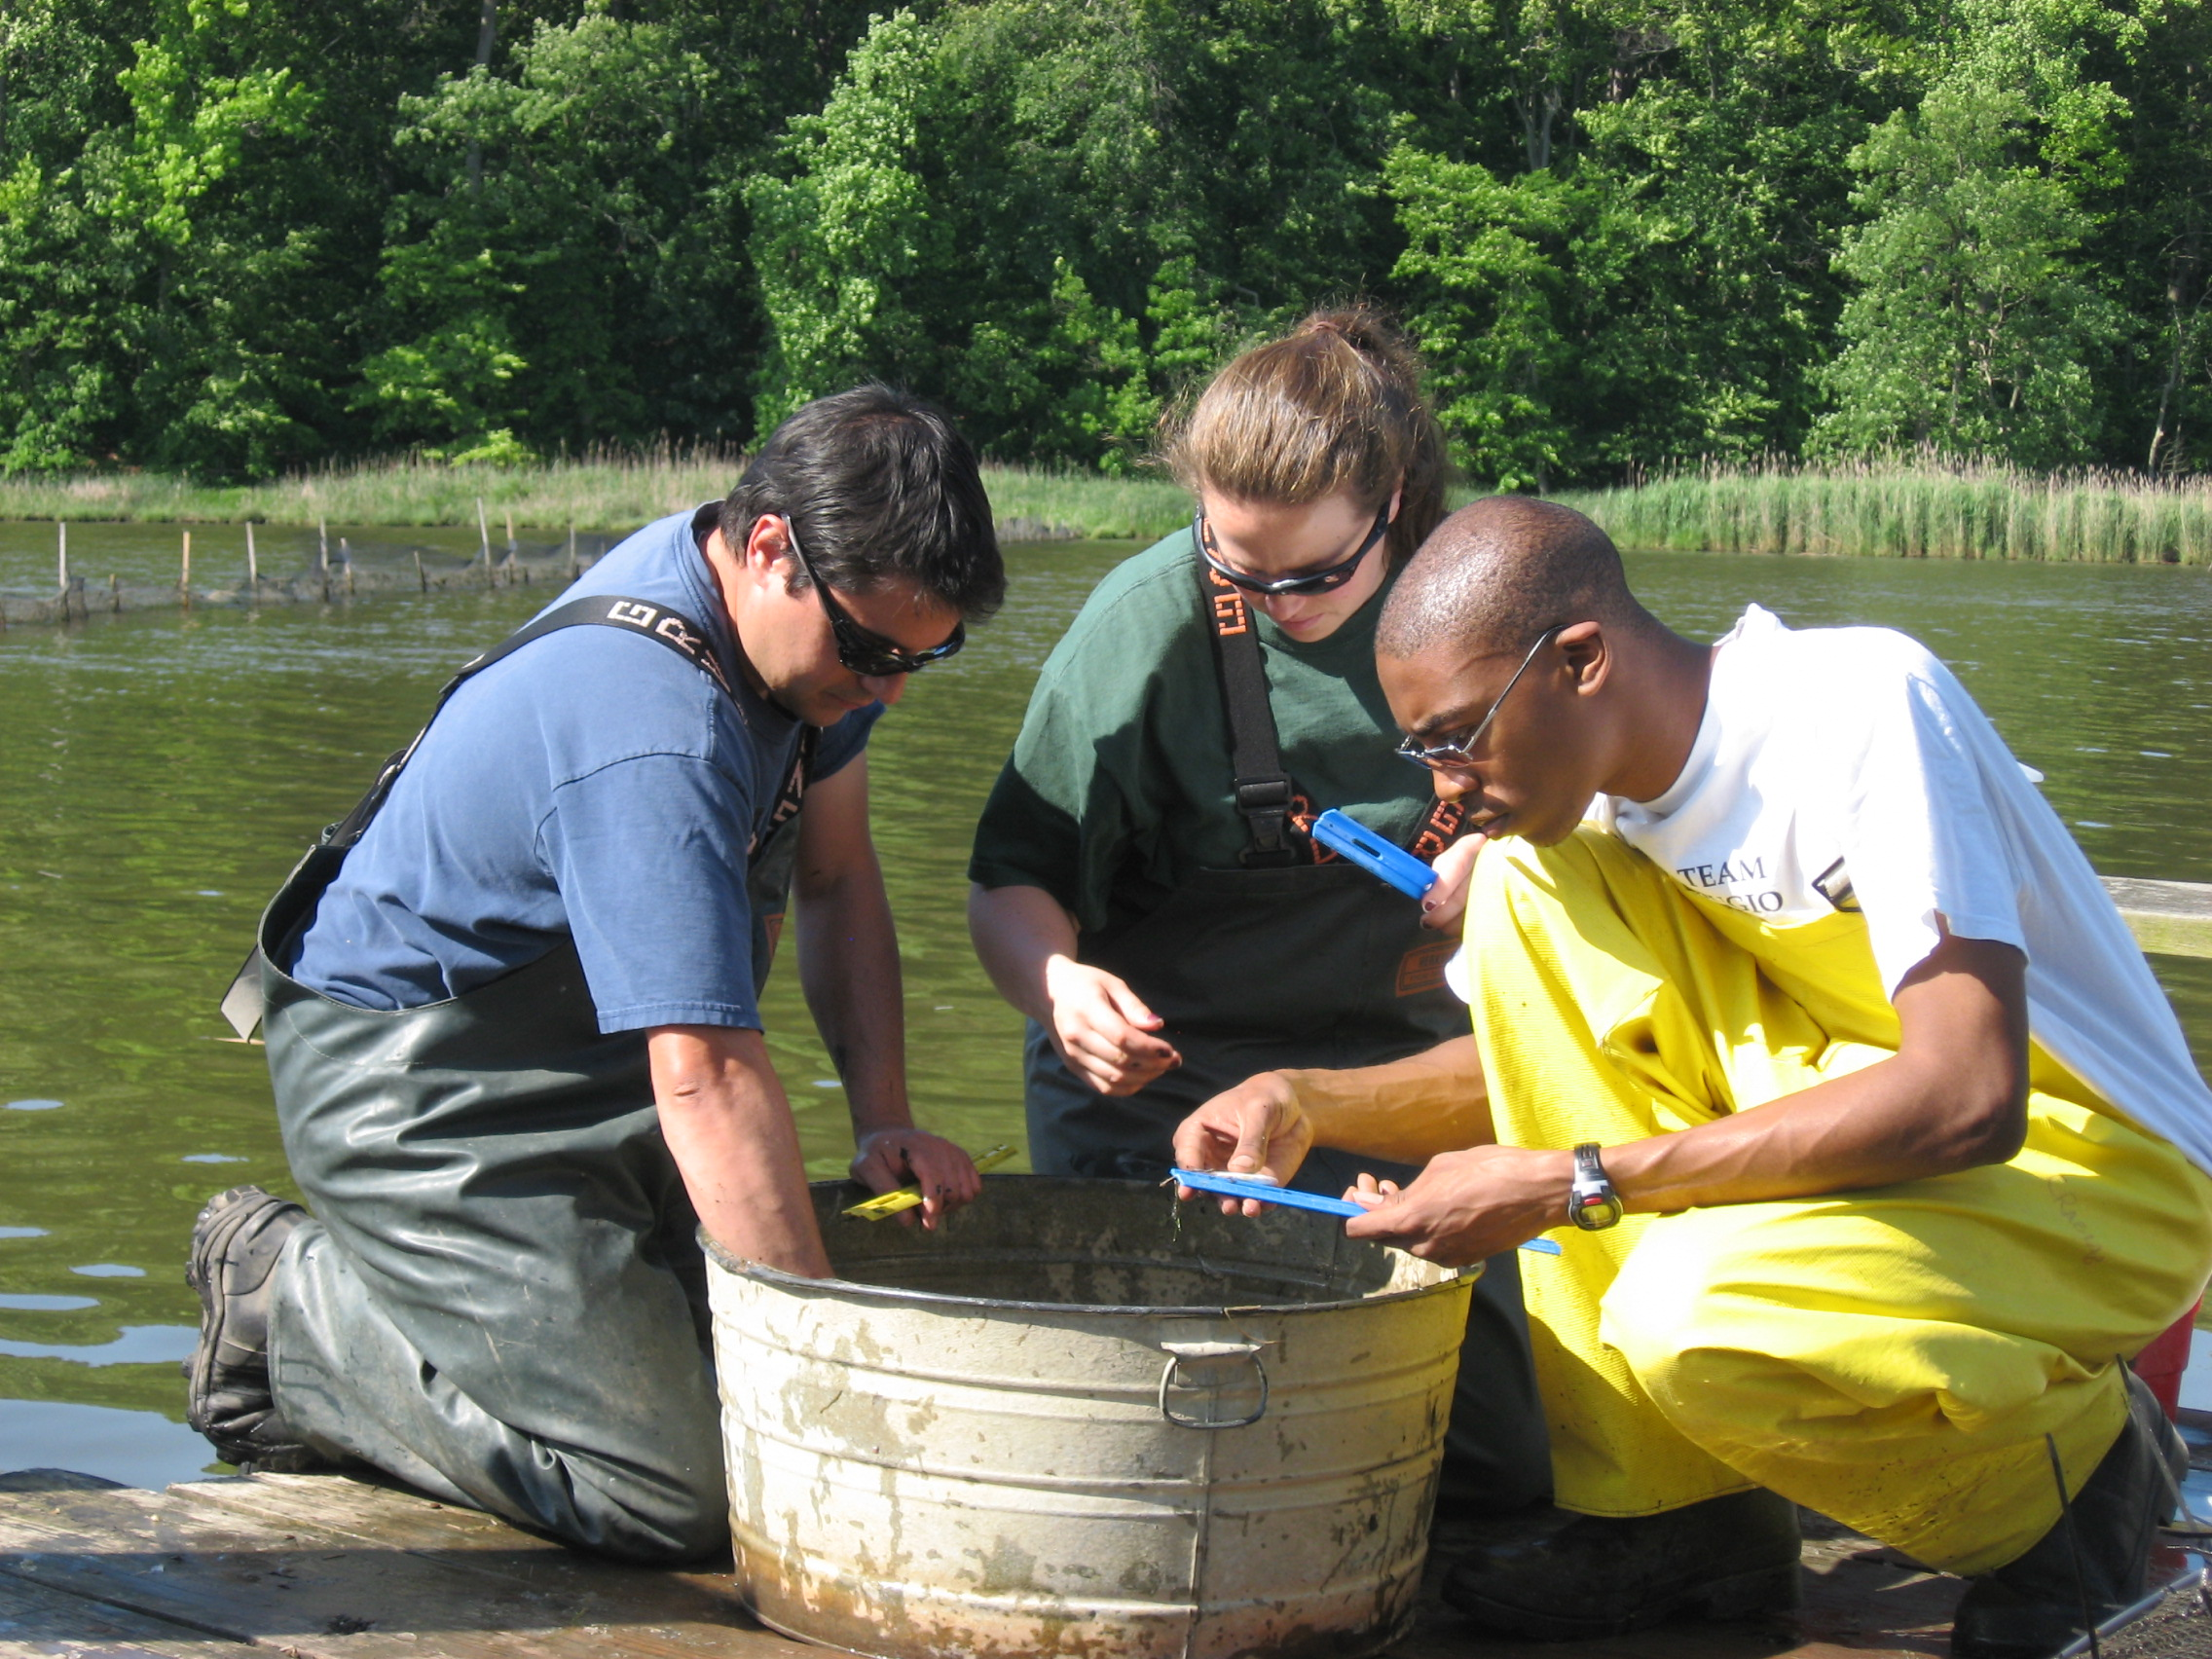 Sampling fish from bucket on river